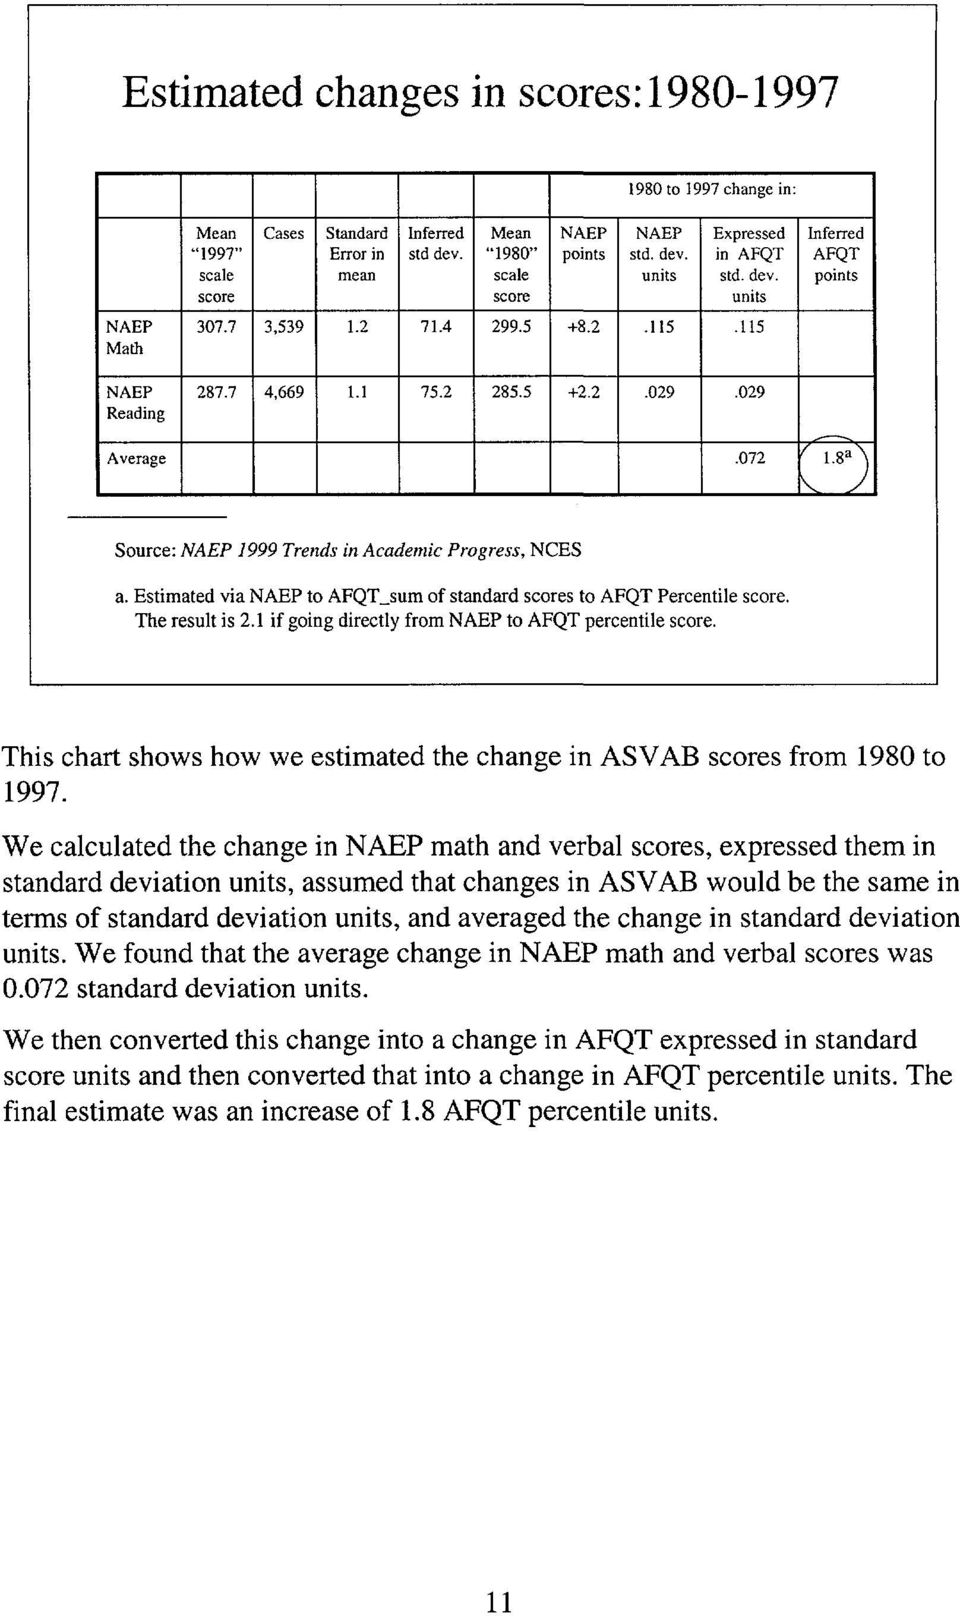 CNA  Follow-on Analysis of PAY 97 Test Scores  CAB D A2